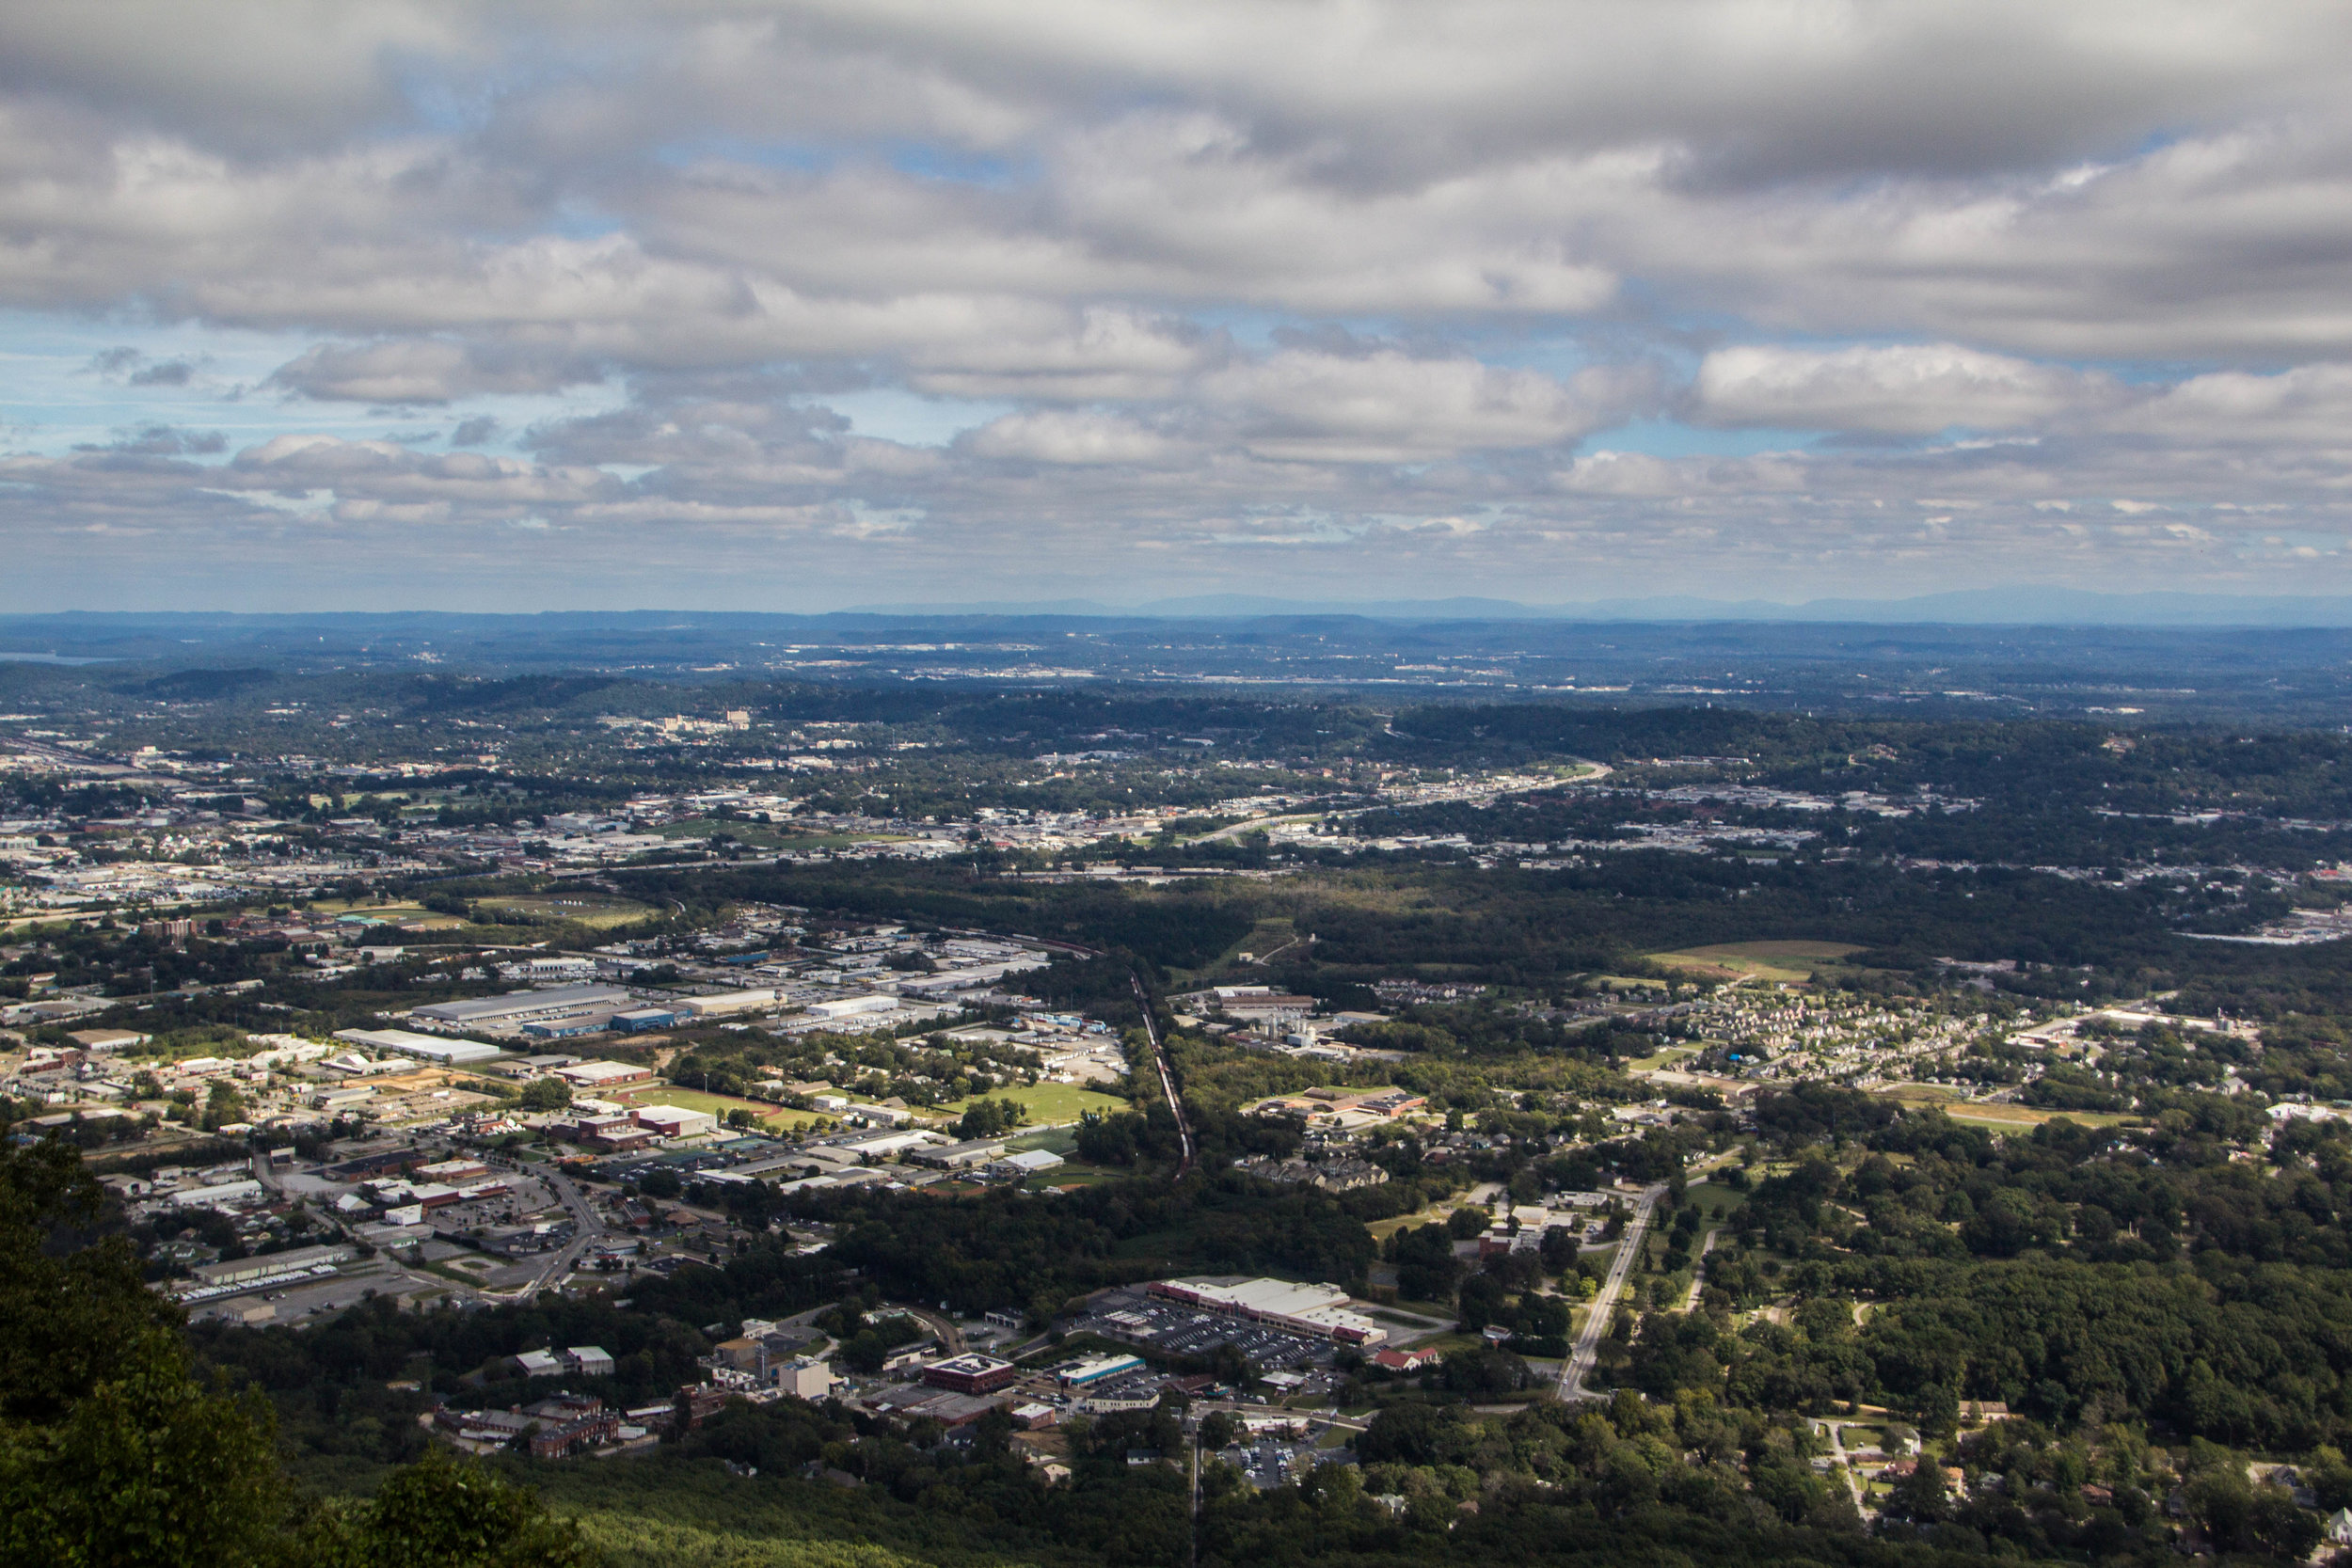 chattanooga-lookout-mountain-point-park-3.jpg